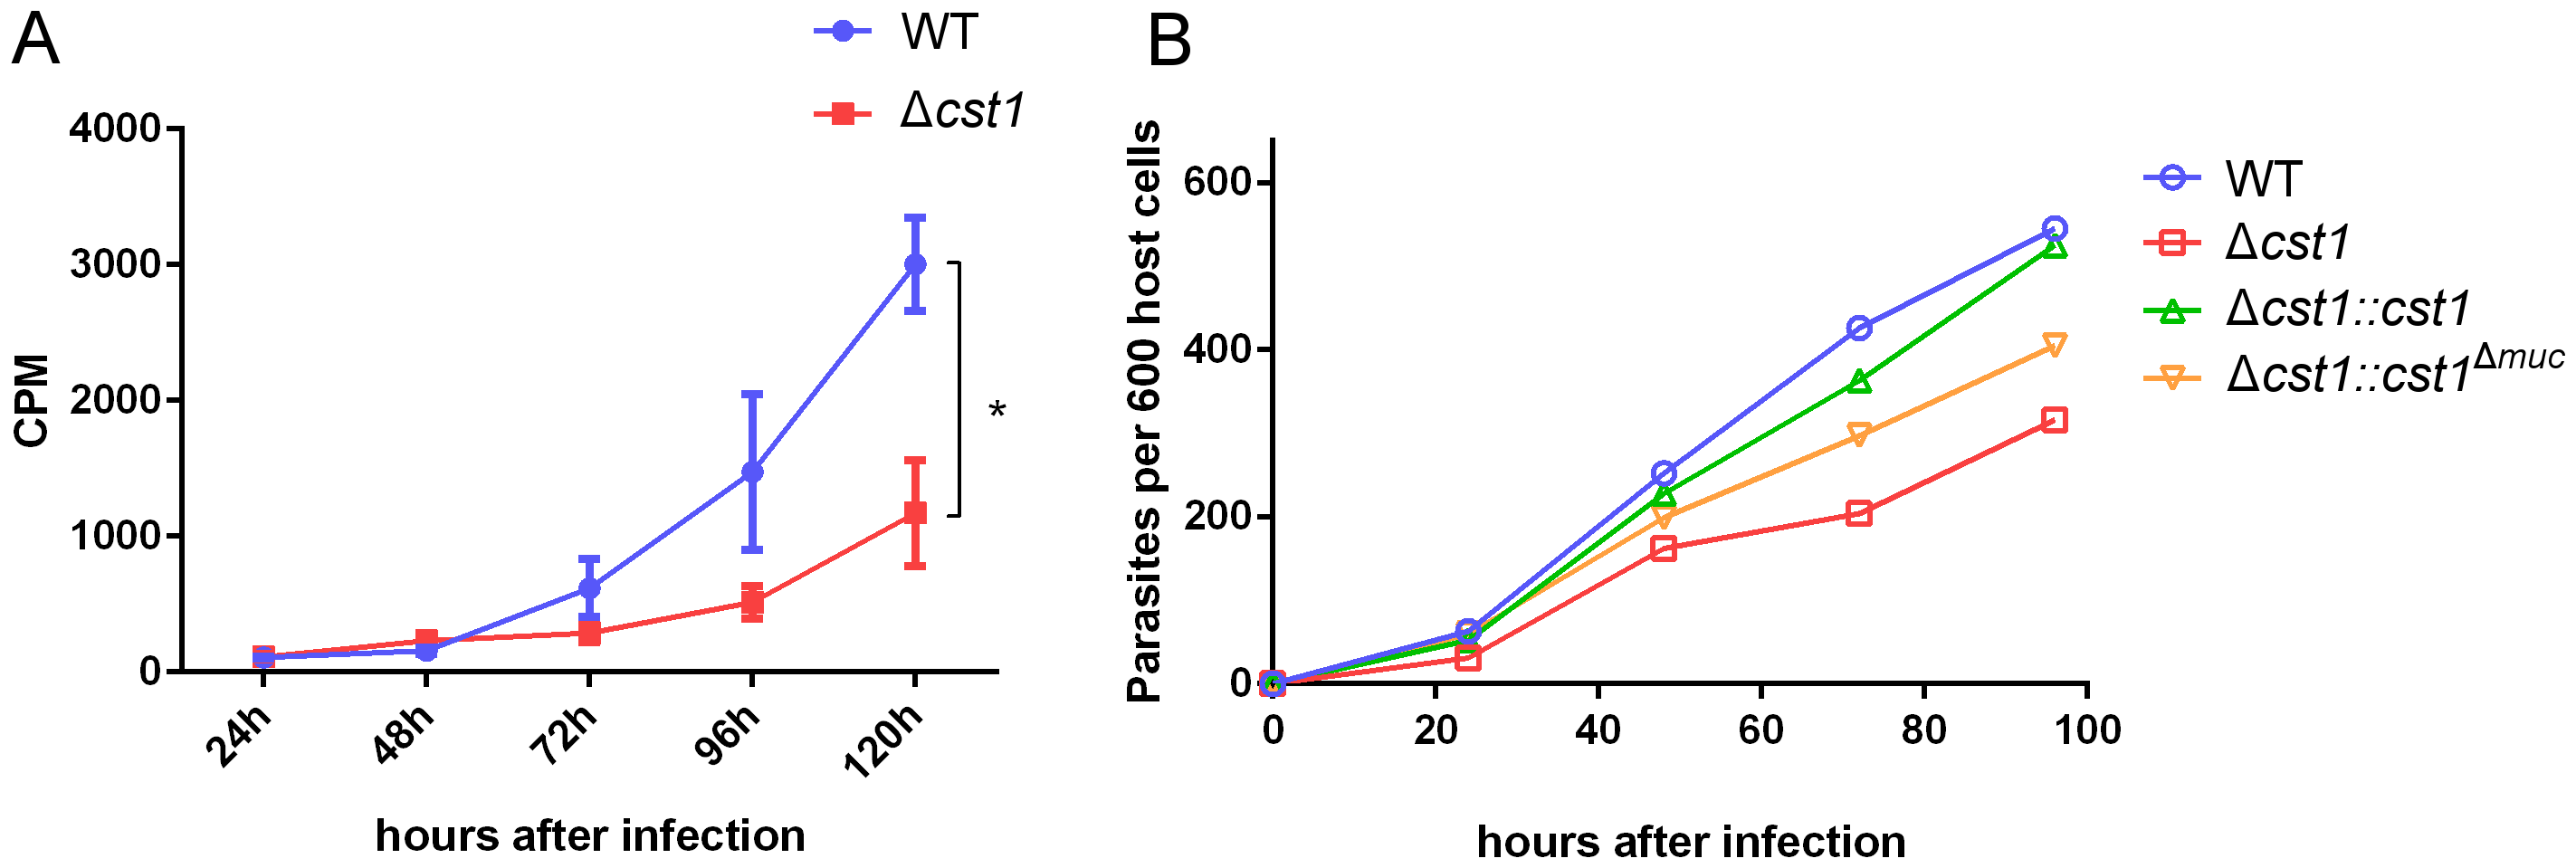 Growth of Δ<i>cst1</i> parasite is impaired at pH 8.1 but not at pH 7.1.